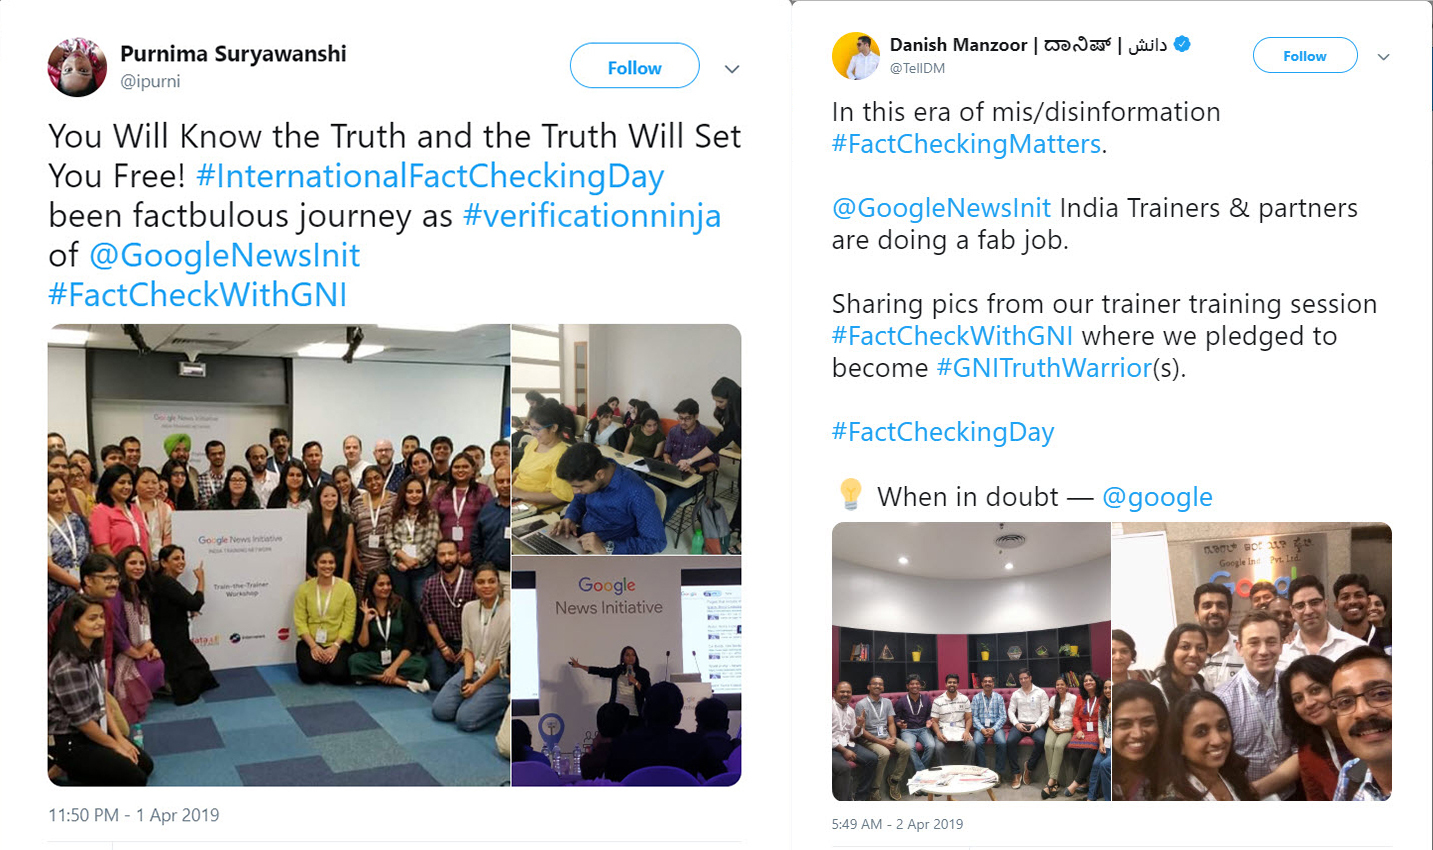 Tweet 1: You will know the truth and the truth will set you free! #InternationalFactCheckDay been factbulous journey as #verificationninja of (at)GoogleNewsInit #FactCheckWithGNI. Tweet 2: In this era of mis/disinformation #FactCheckingMatters. (at)GoogleNewsInit India Trainers & partners are doing a fab job. Sharing pics from our trainer training session #FactCheckWithGNI where we pledged to become #GNITruthWarrior(s) #FactCheckingDay. When in doubt - google